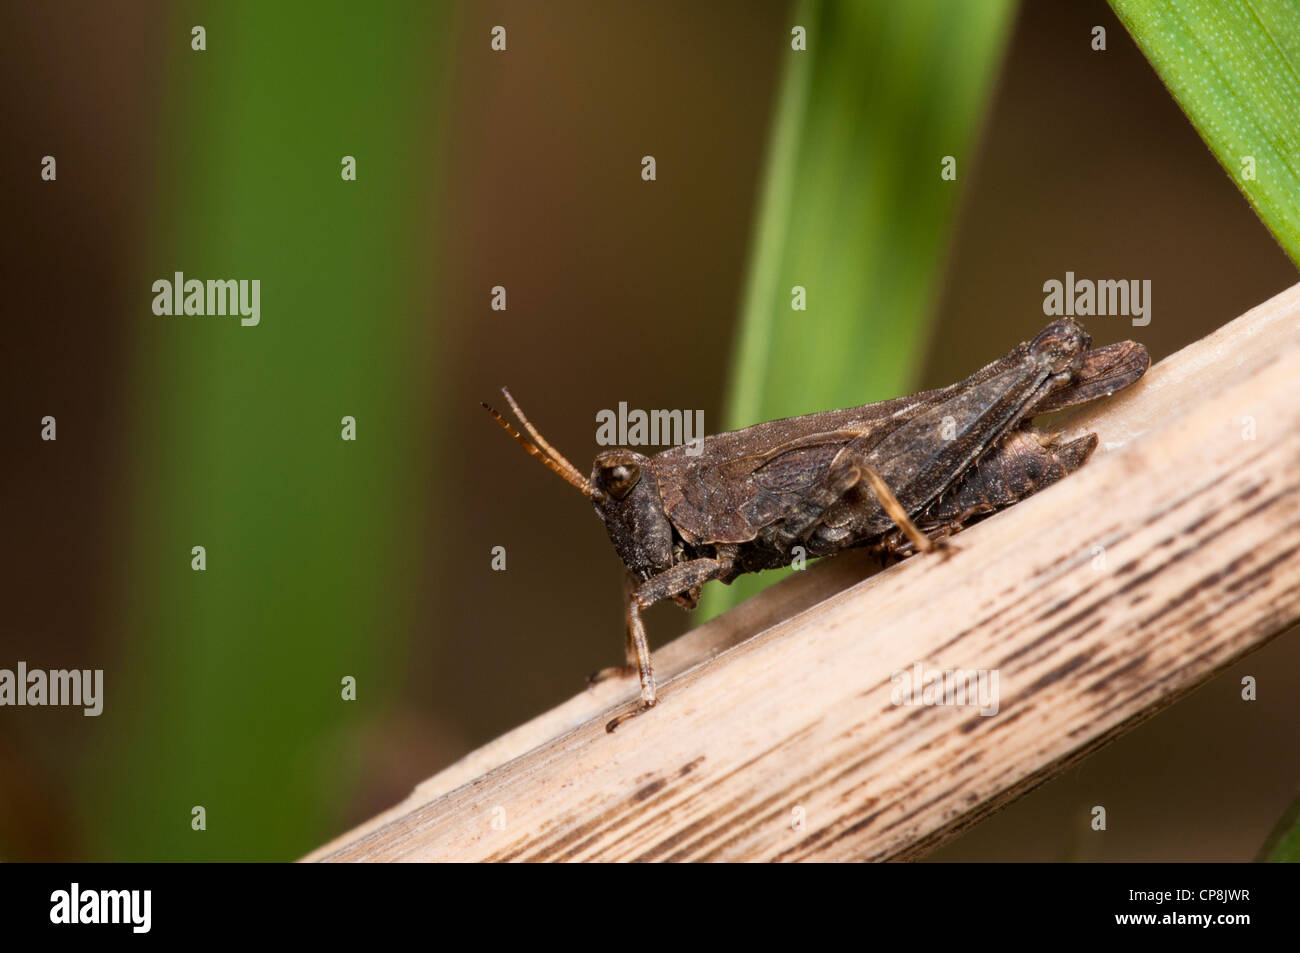 A groundhopper (Tetrix subulata) perched on a reed stem at Crossness Nature Reserve, Bexley, Kent. May. - Stock Image